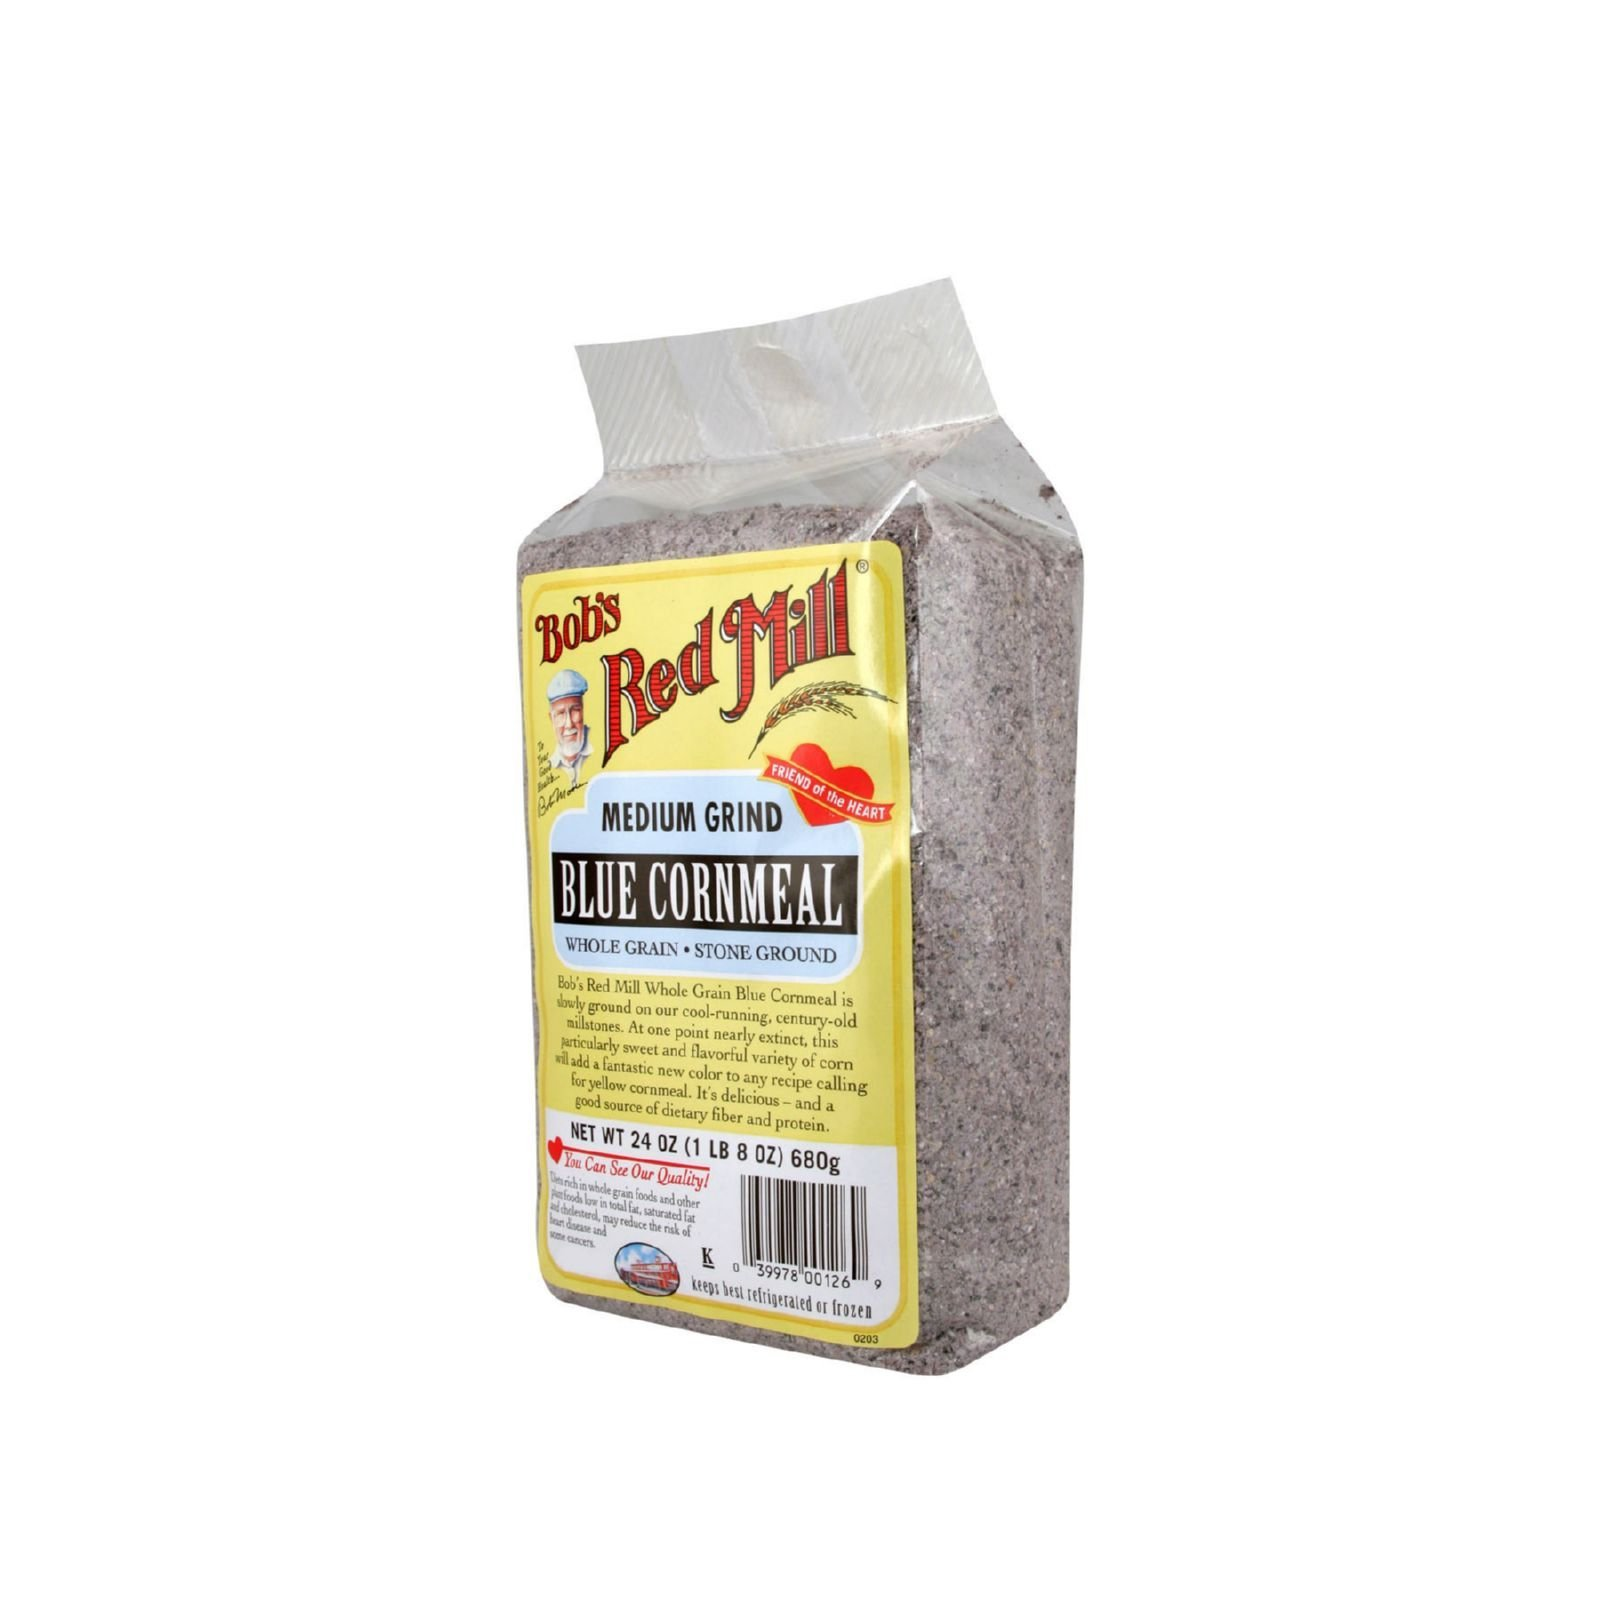 Bobs Red Mill Blue Cornmeal - 24 oz - Case of 4